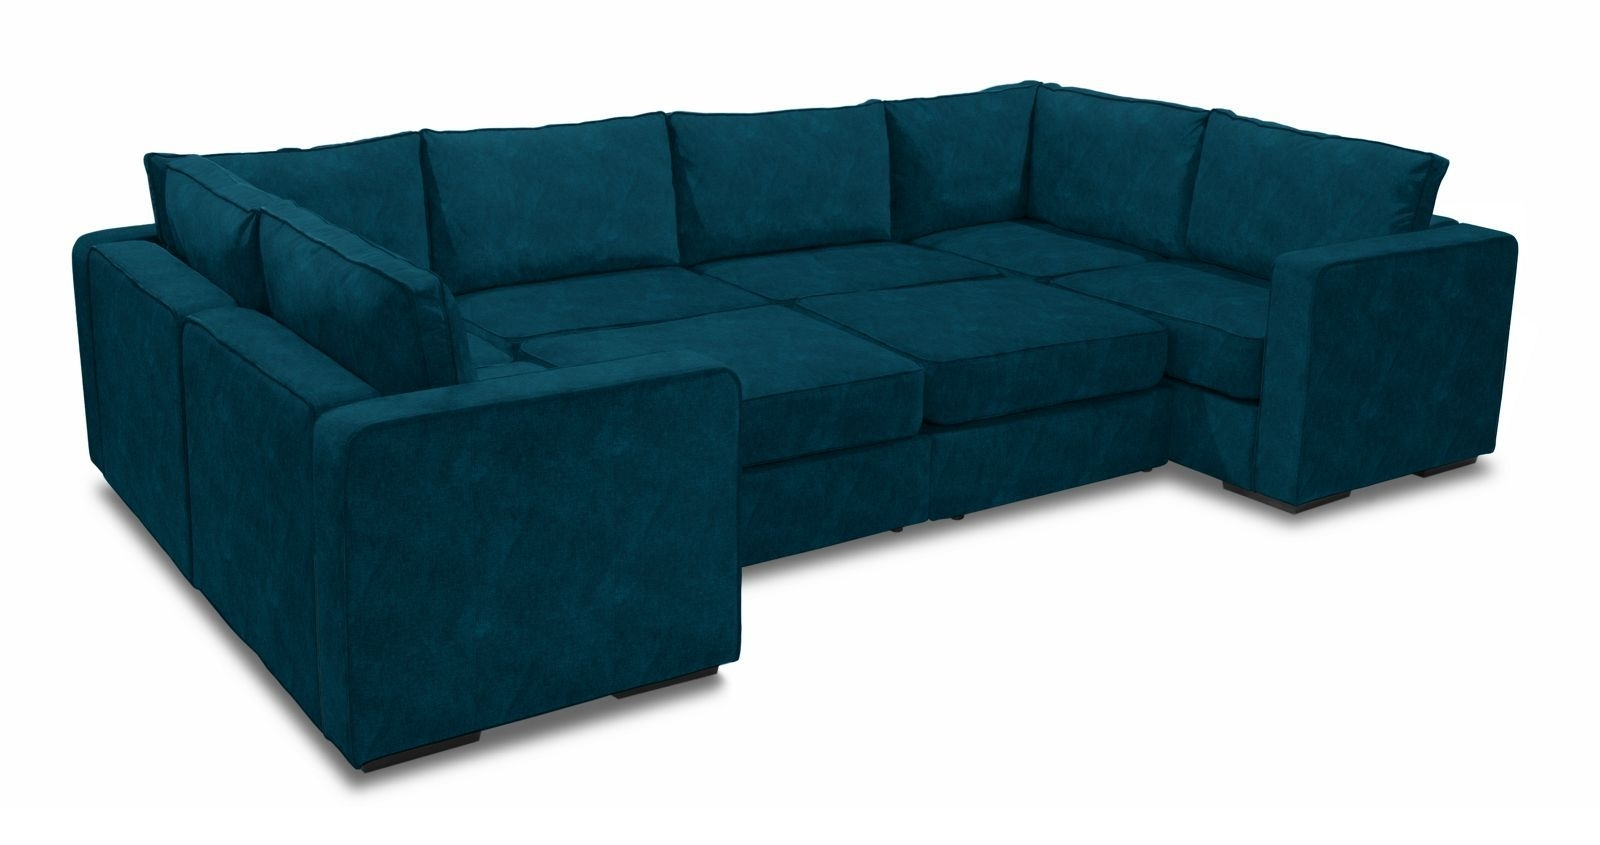 8 Seats + 10 Sides | Living/media Room | Pinterest | Couch, Home inside London Optical Reversible Sofa Chaise Sectionals (Image 1 of 30)